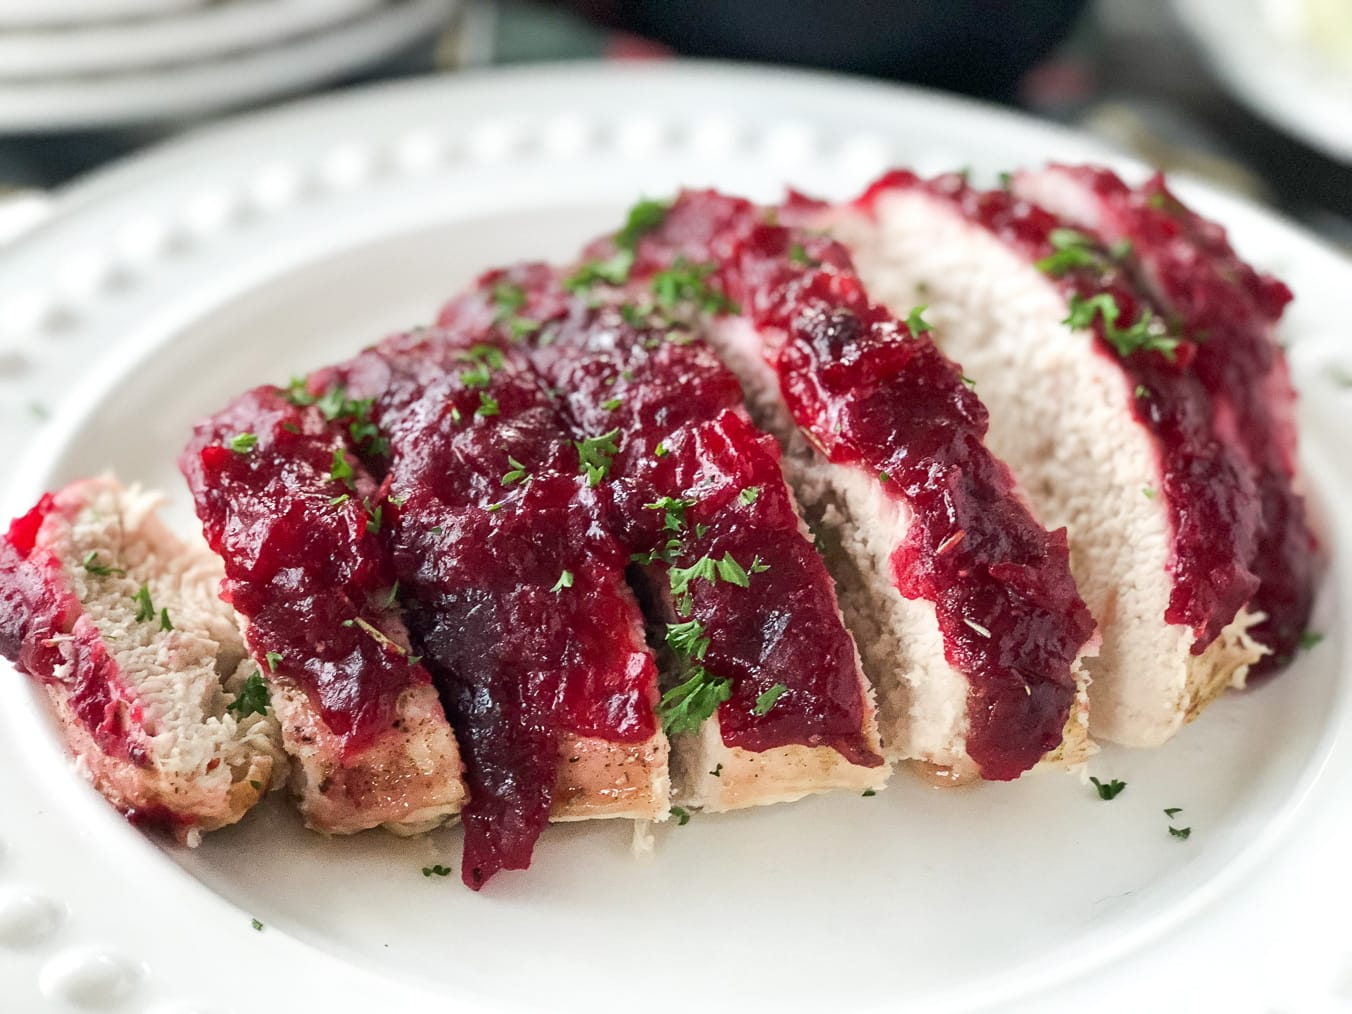 a turkey breast glazed with cranberry sauce, cut into slices and placed on a white plate